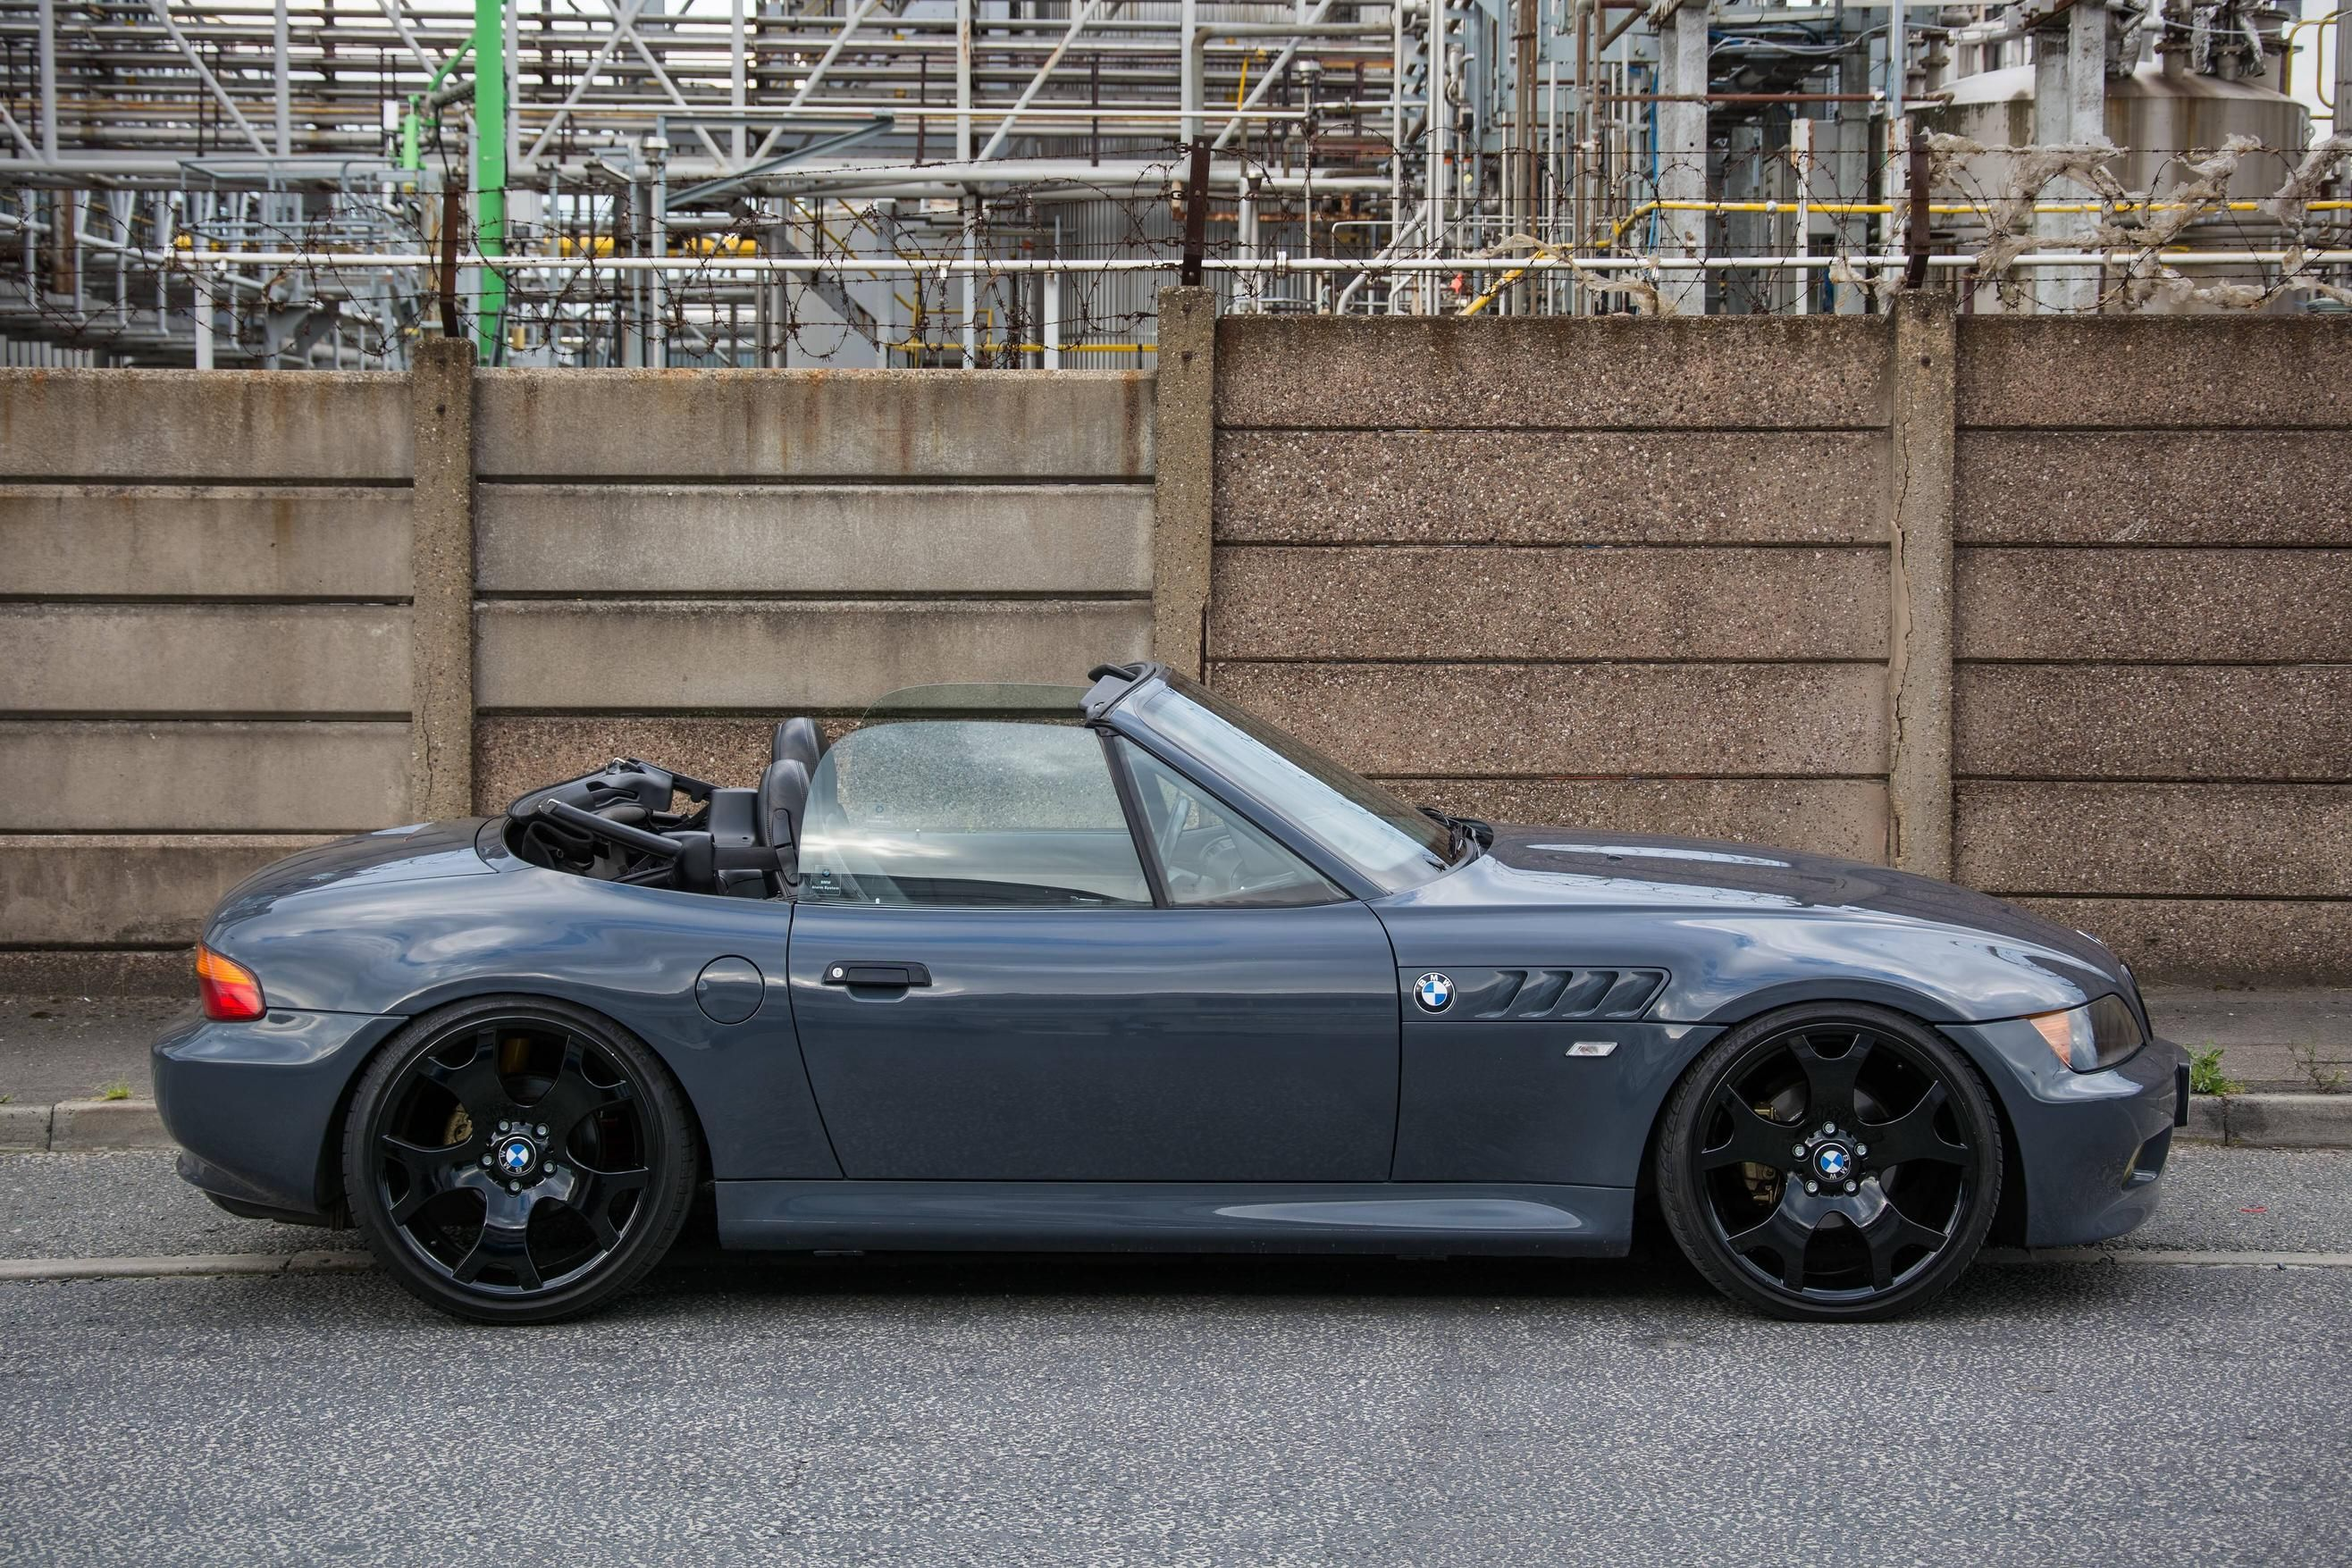 For Sale Not Your Average Bmw Z3 Will Listen To Offers P